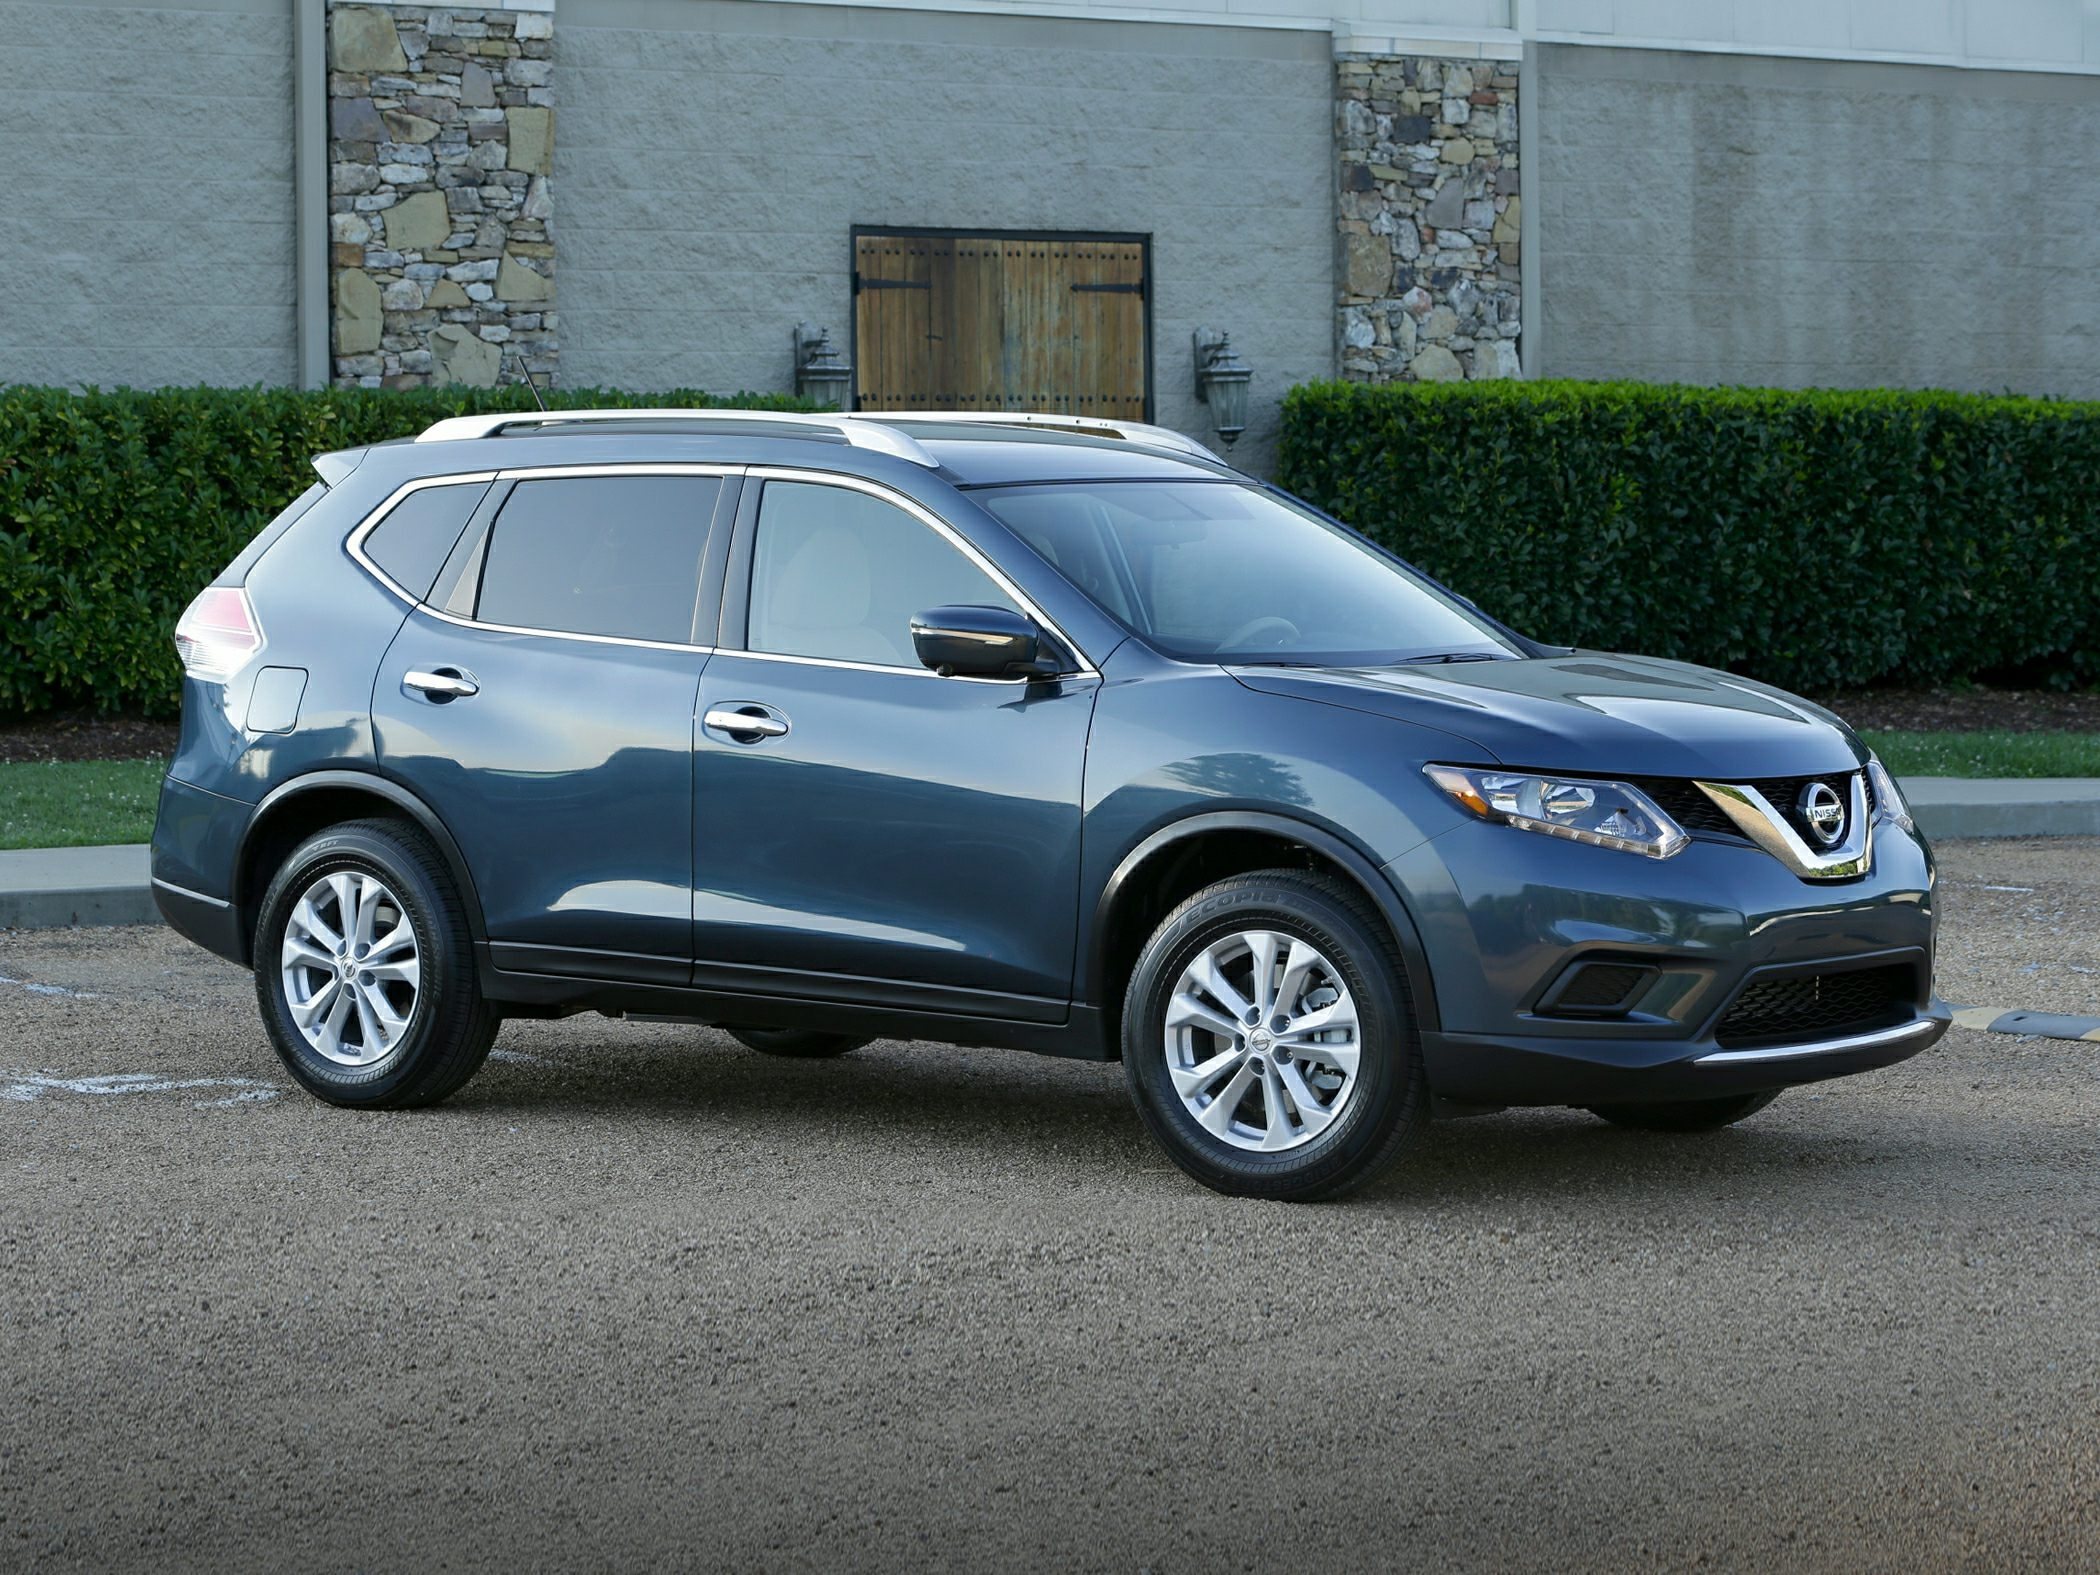 nissan rogue invoice price 2014 autos post nissan rogue invoice